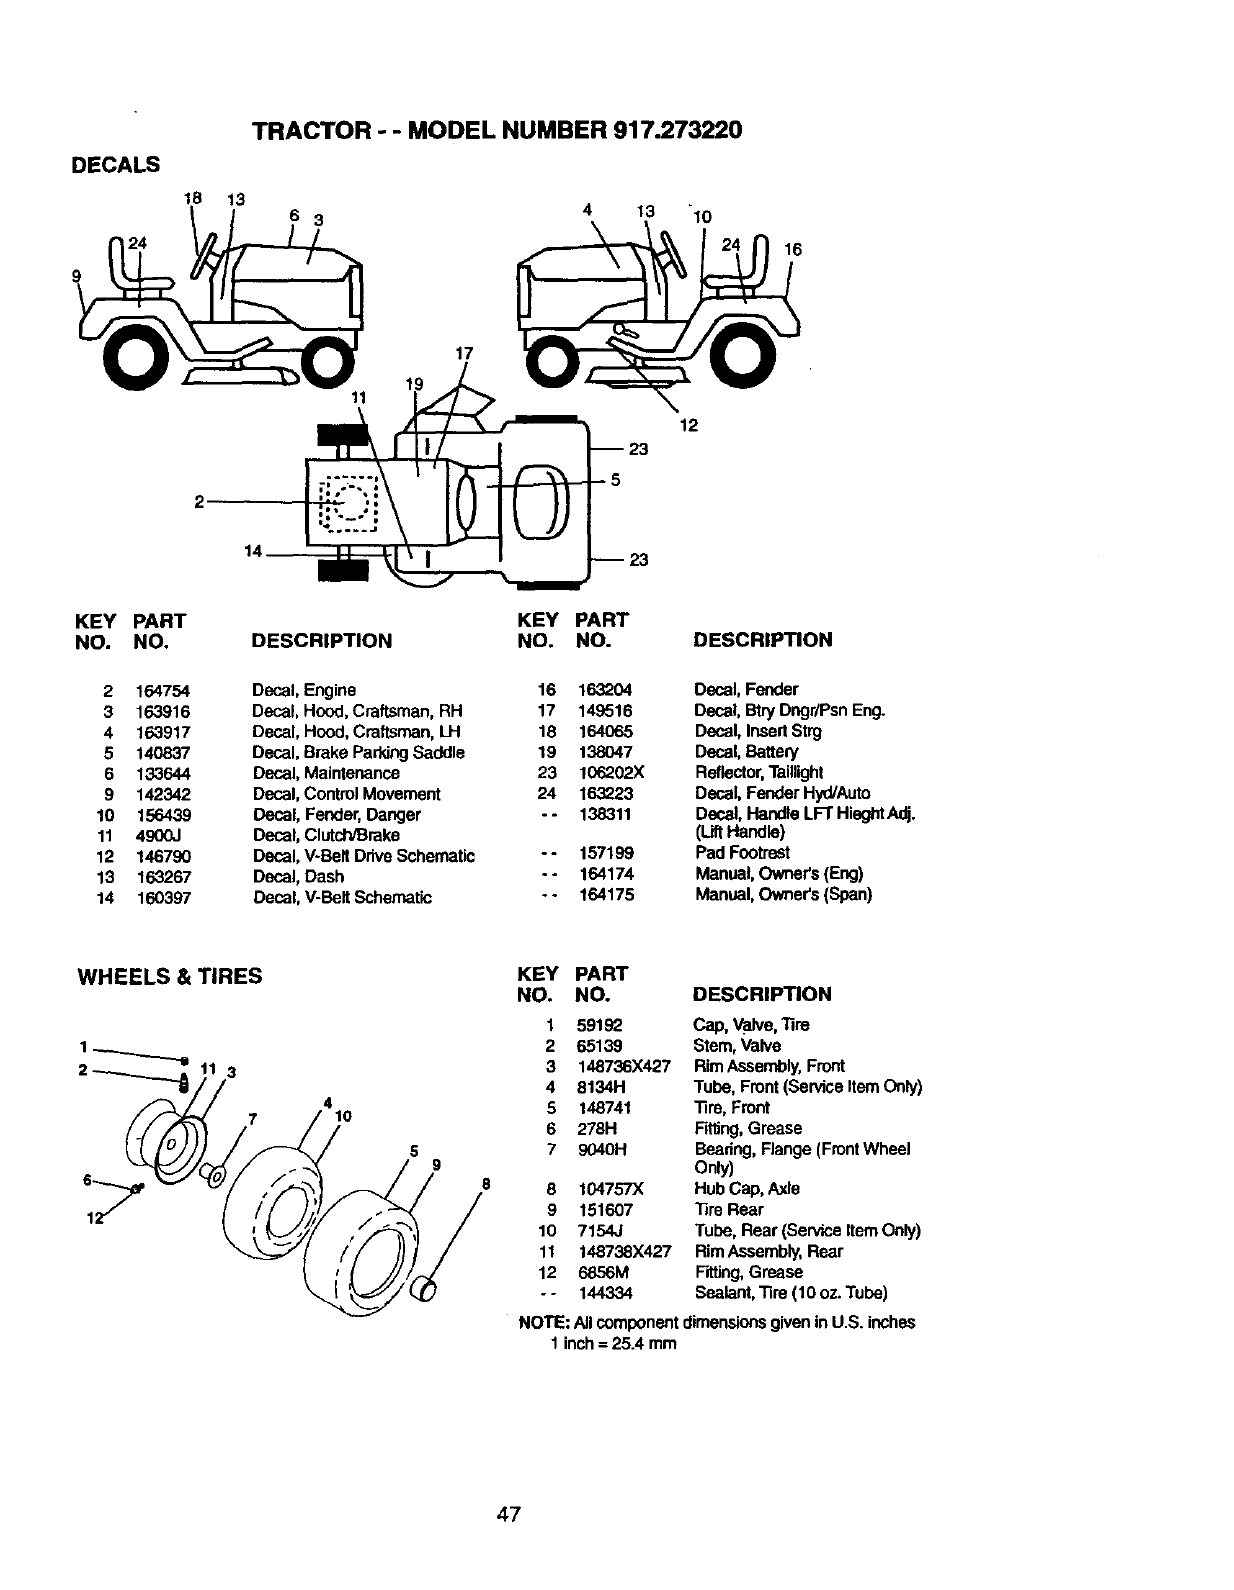 Craftsman 917273220 User Manual TRACTOR Manuals And Guides